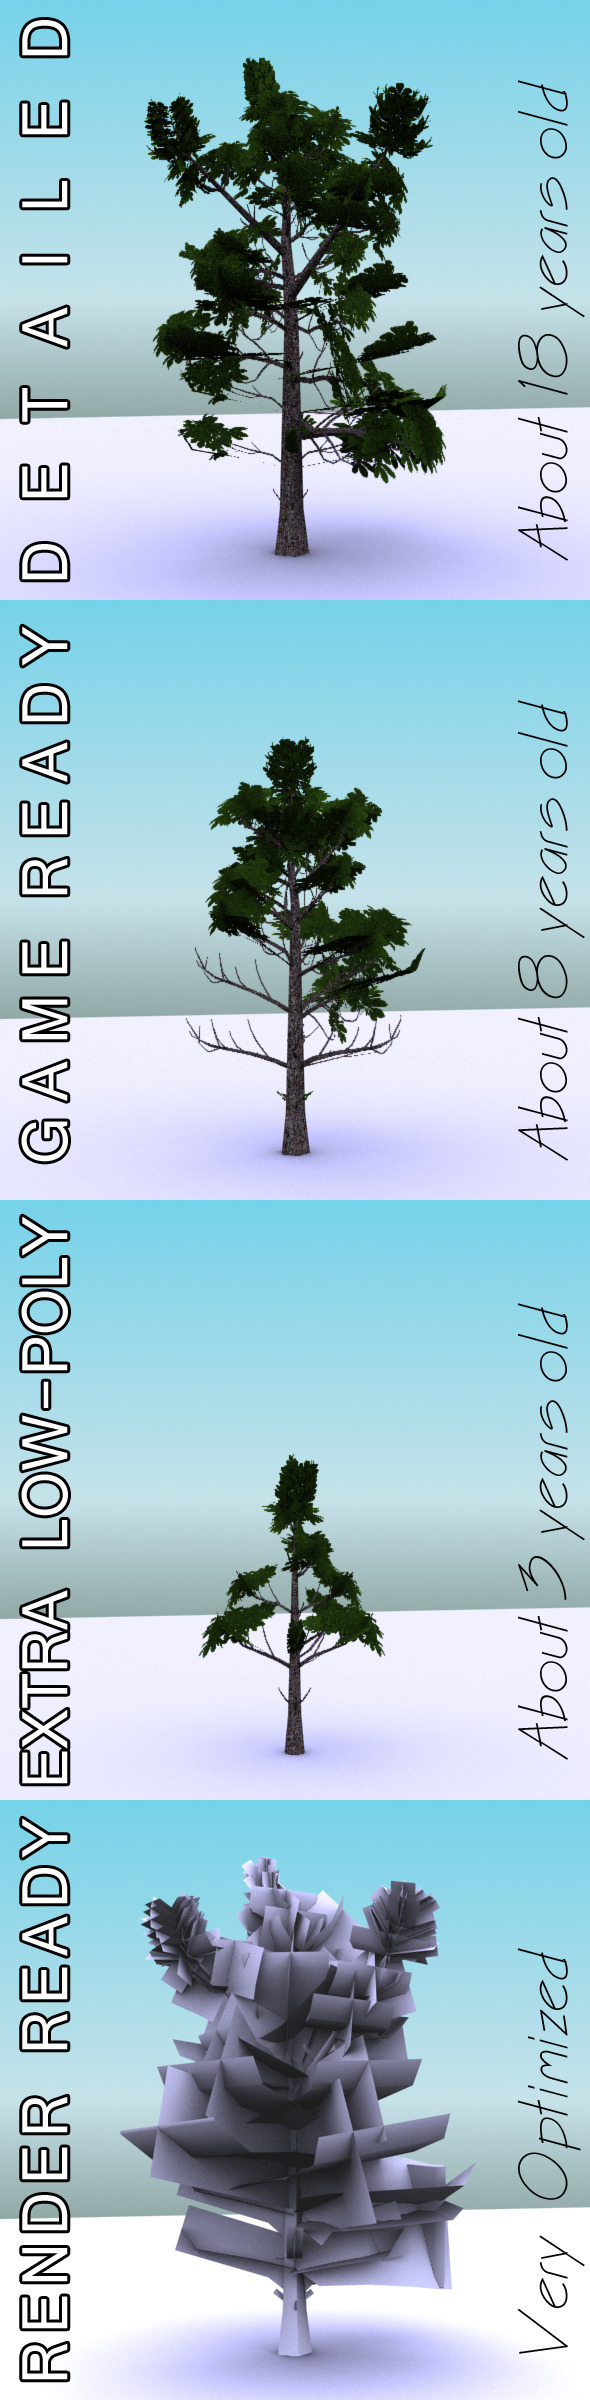 GameReady Low Poly Tree Pack 3 (Horse-chestnut) - 3DOcean Item for Sale